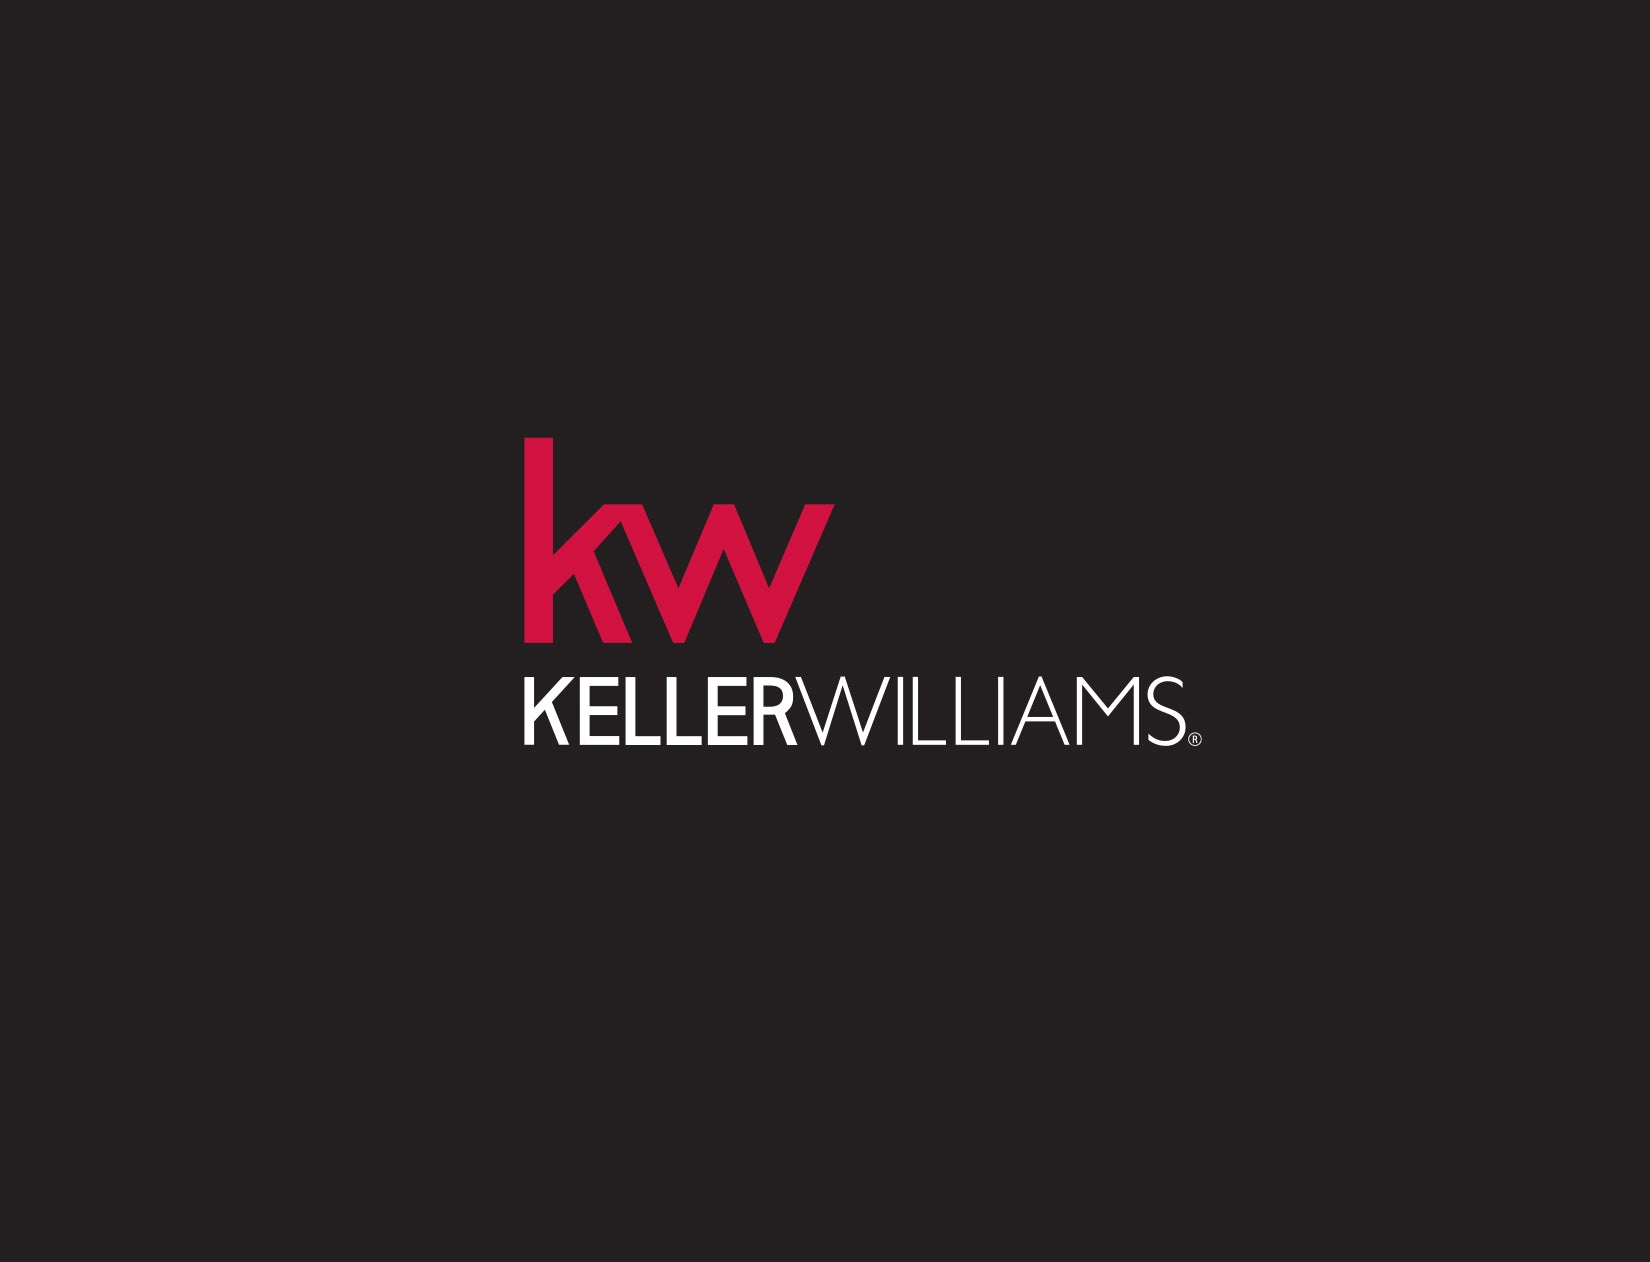 Black Keller Williams Notecards (50)